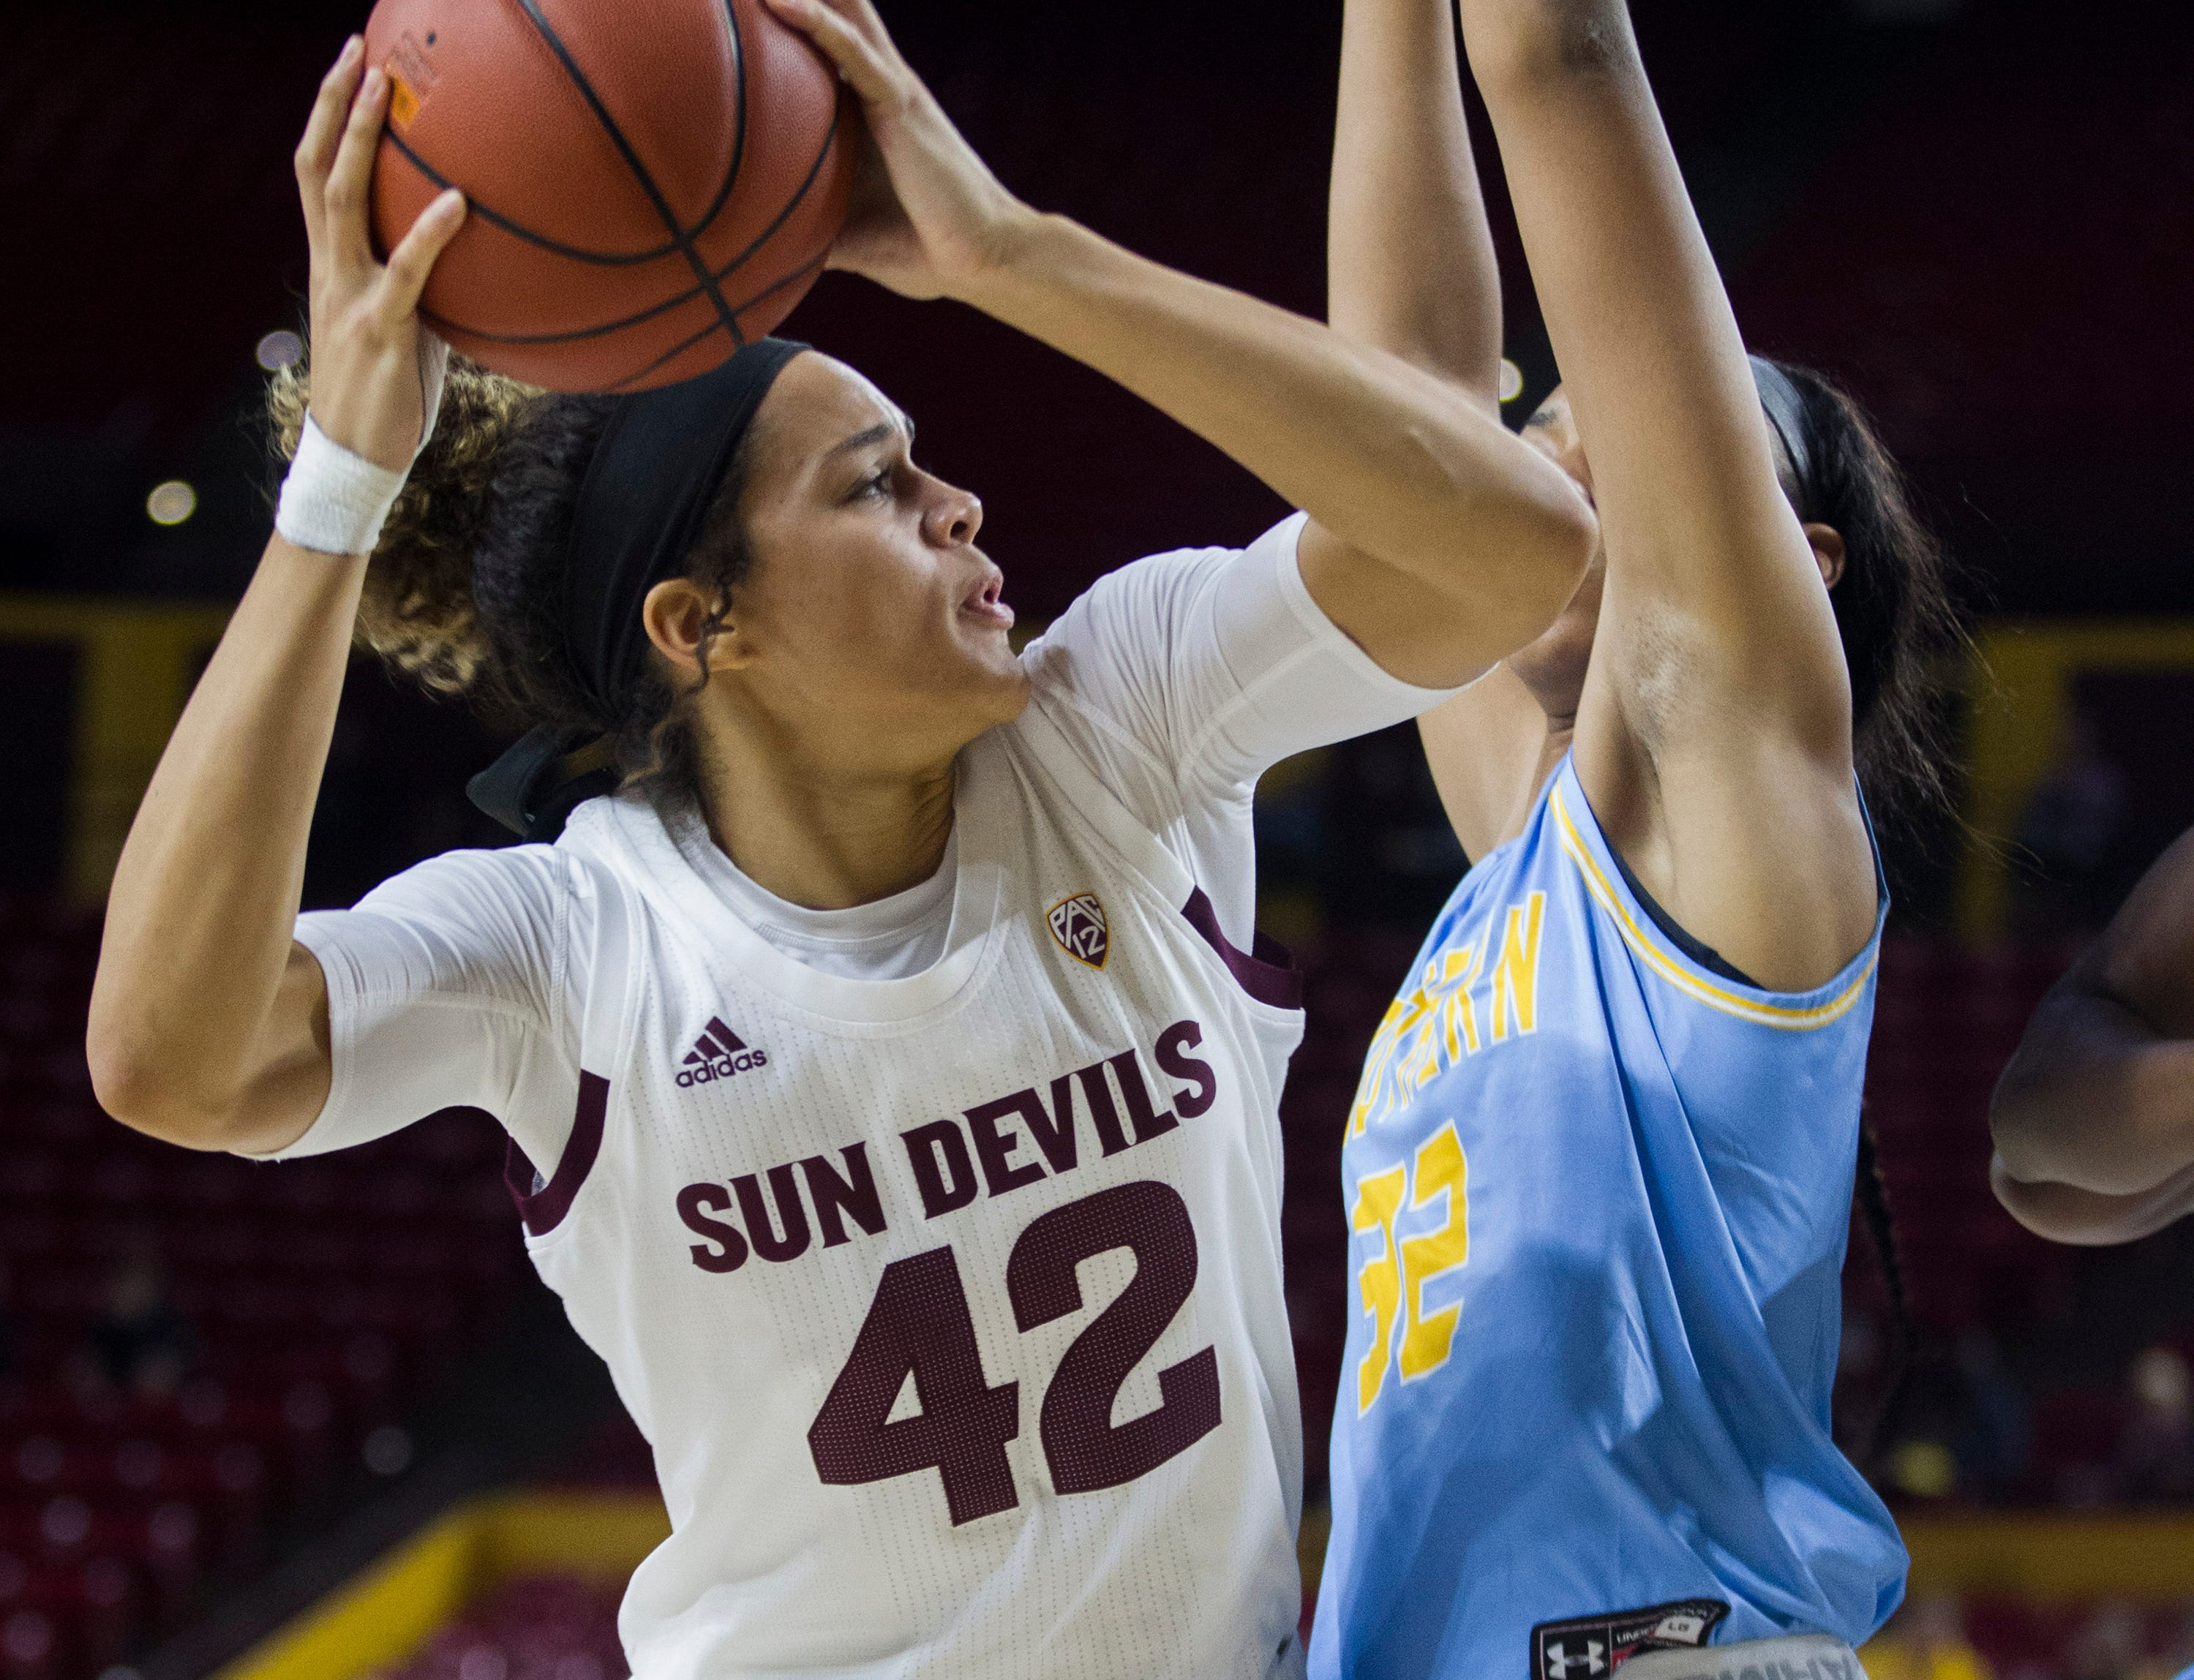 Arizona State University's Kianna Ibis looks to the basket against Southern's Ceundra McGhee during the first half of their game in Tempe, Friday, Dec. 7, 2018. Darryl Webb/Special for the Republic